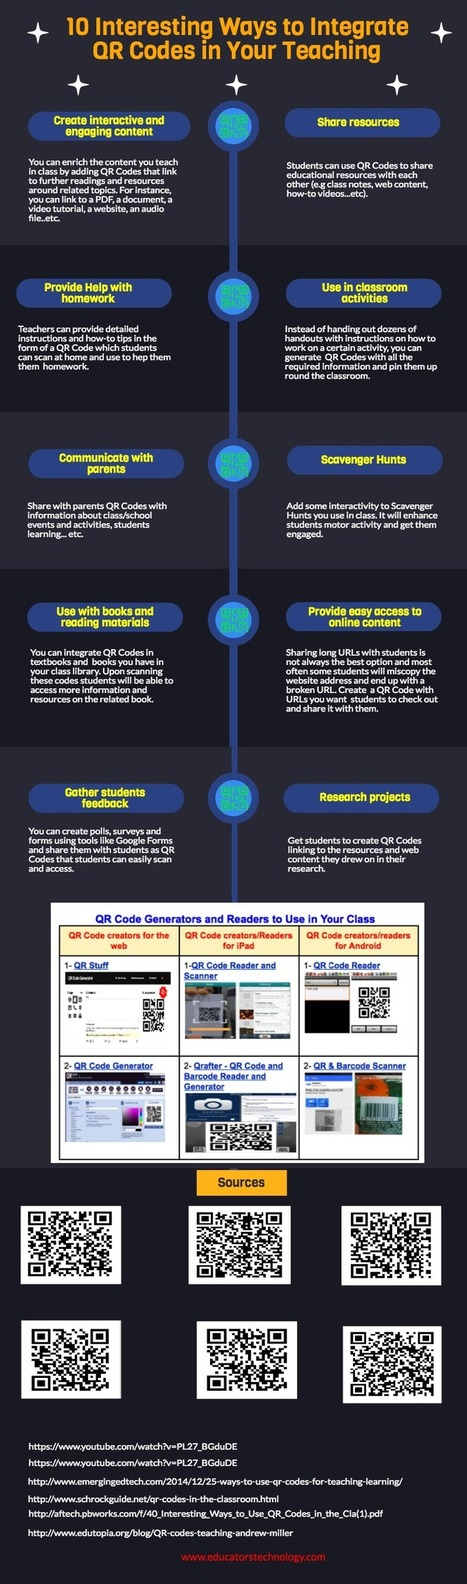 10 Interesting Ways to Integrate QR Codes in Your Teaching (Infographic) ~ Educational Technology and Mobile Learning | idevices for special needs | Scoop.it